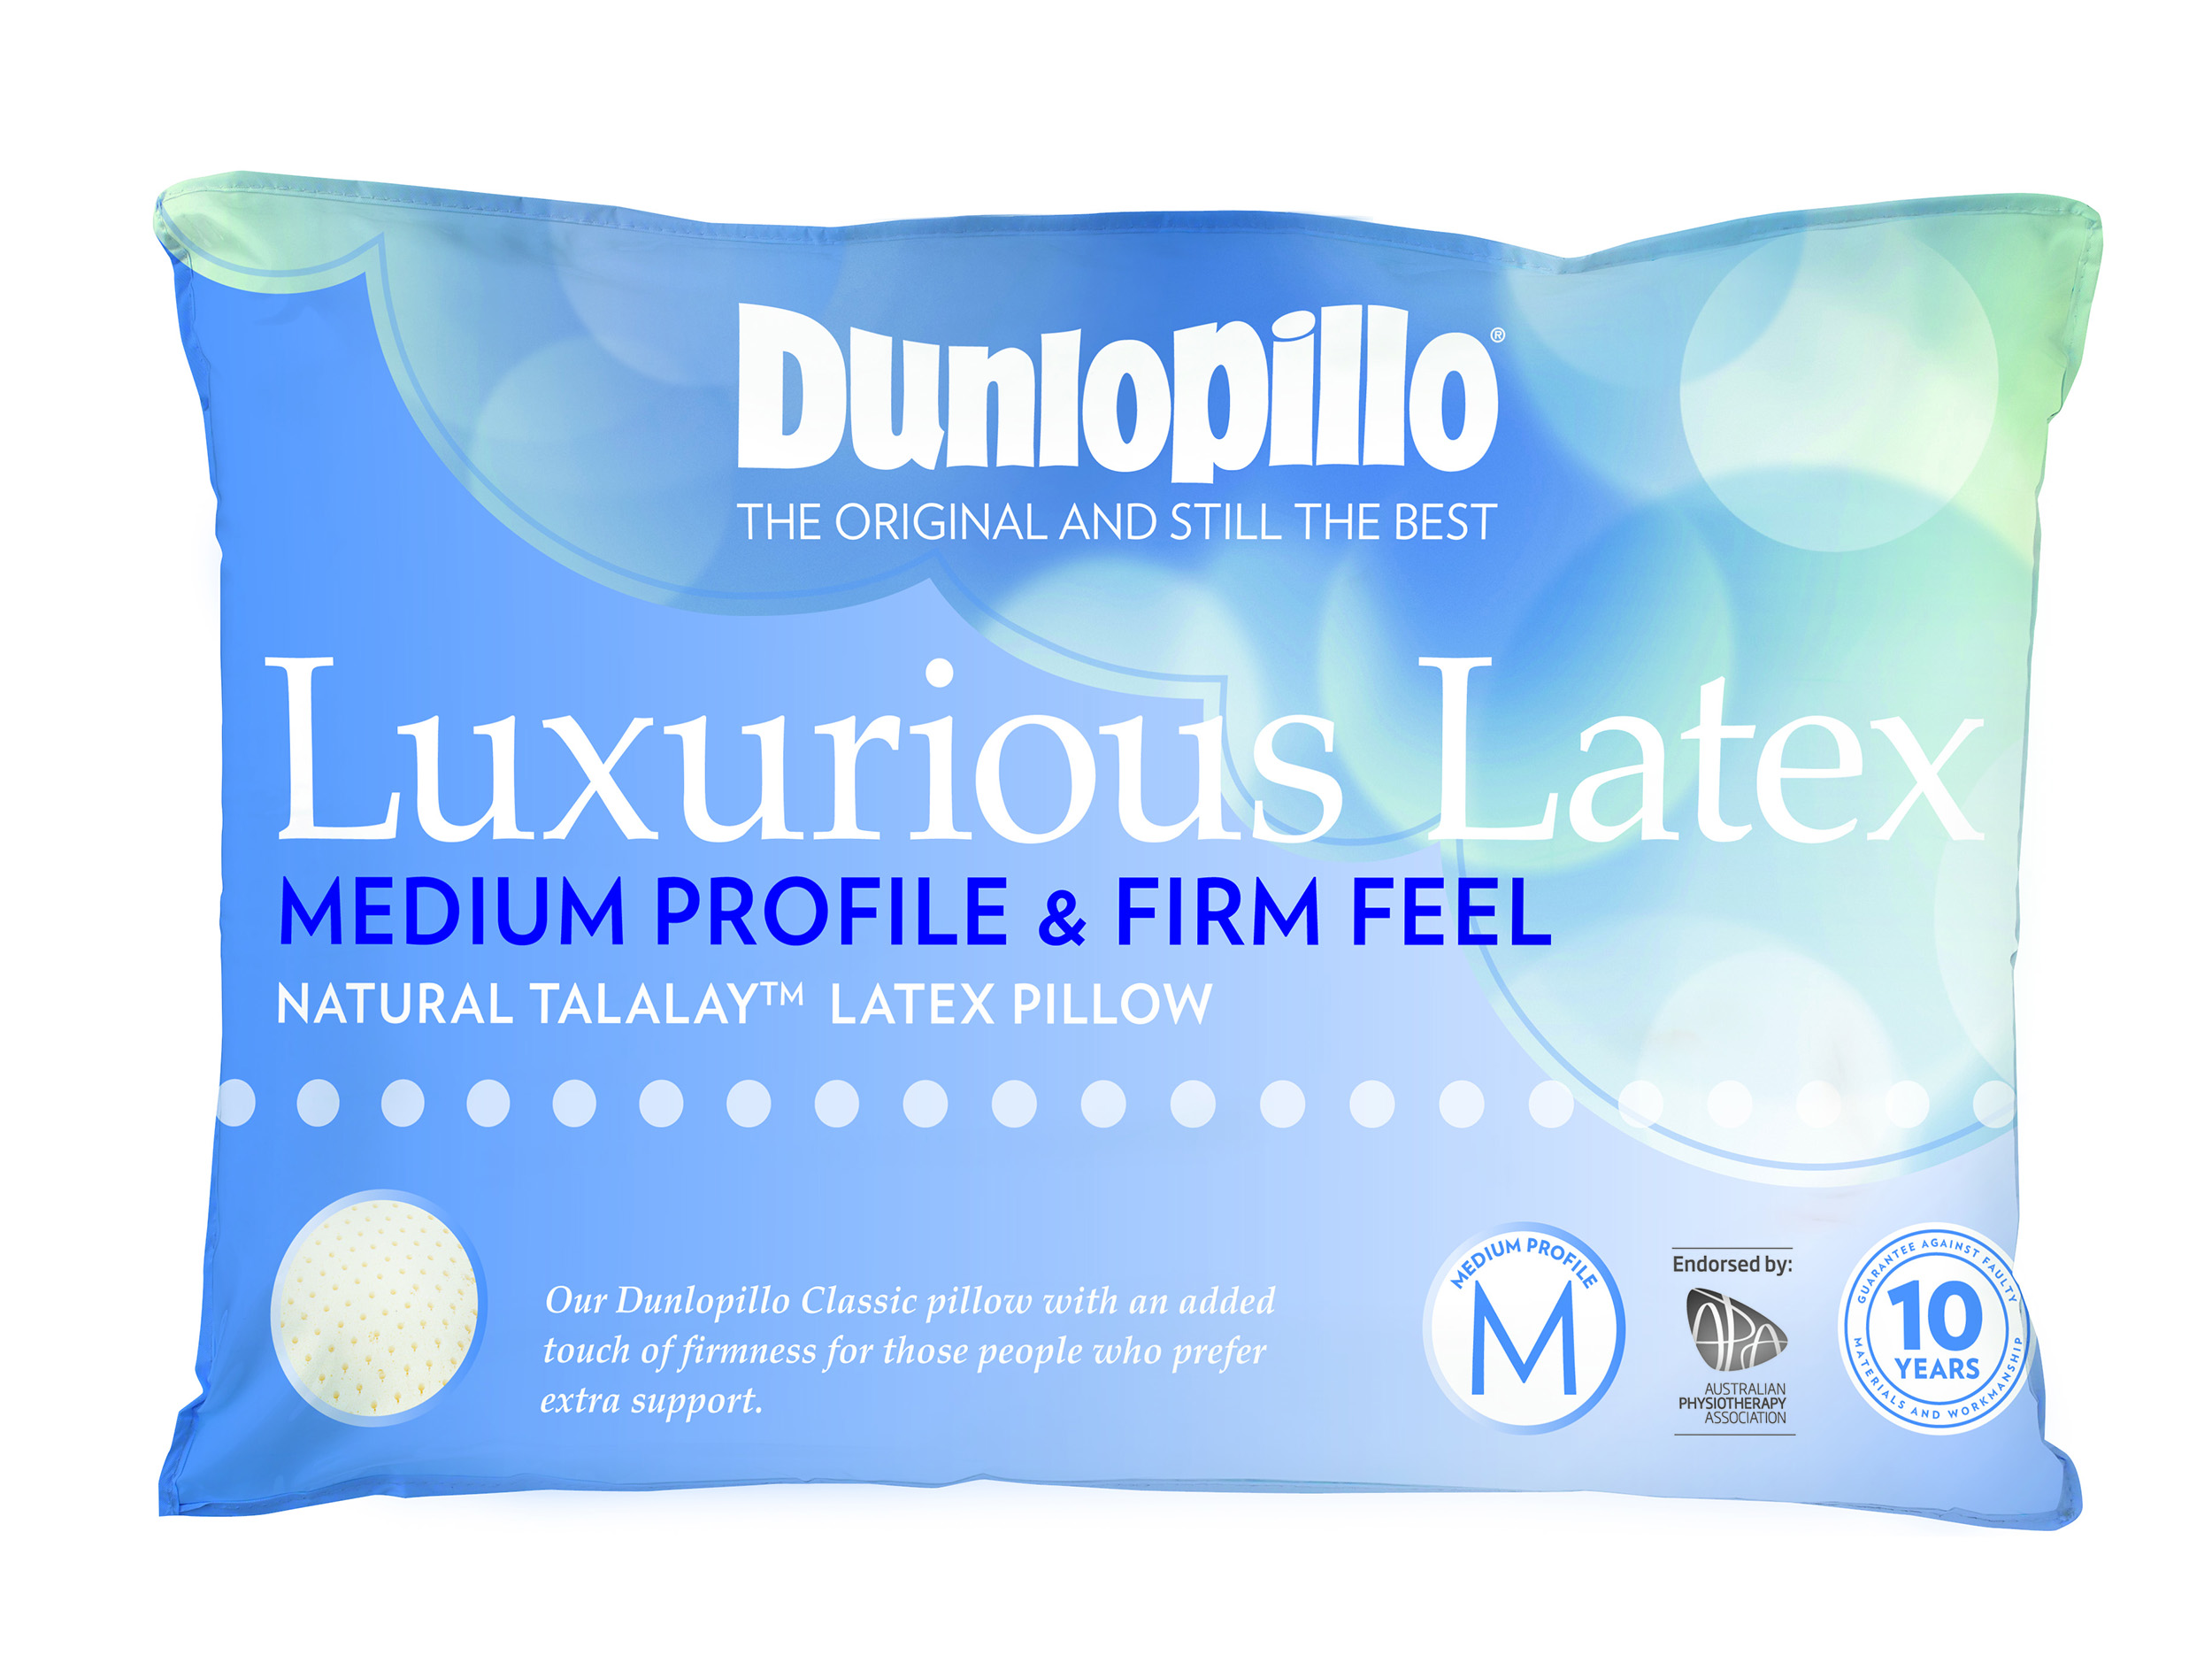 Dunlopillo Luxurious Latex Medium Profile Firm Feel Pillow